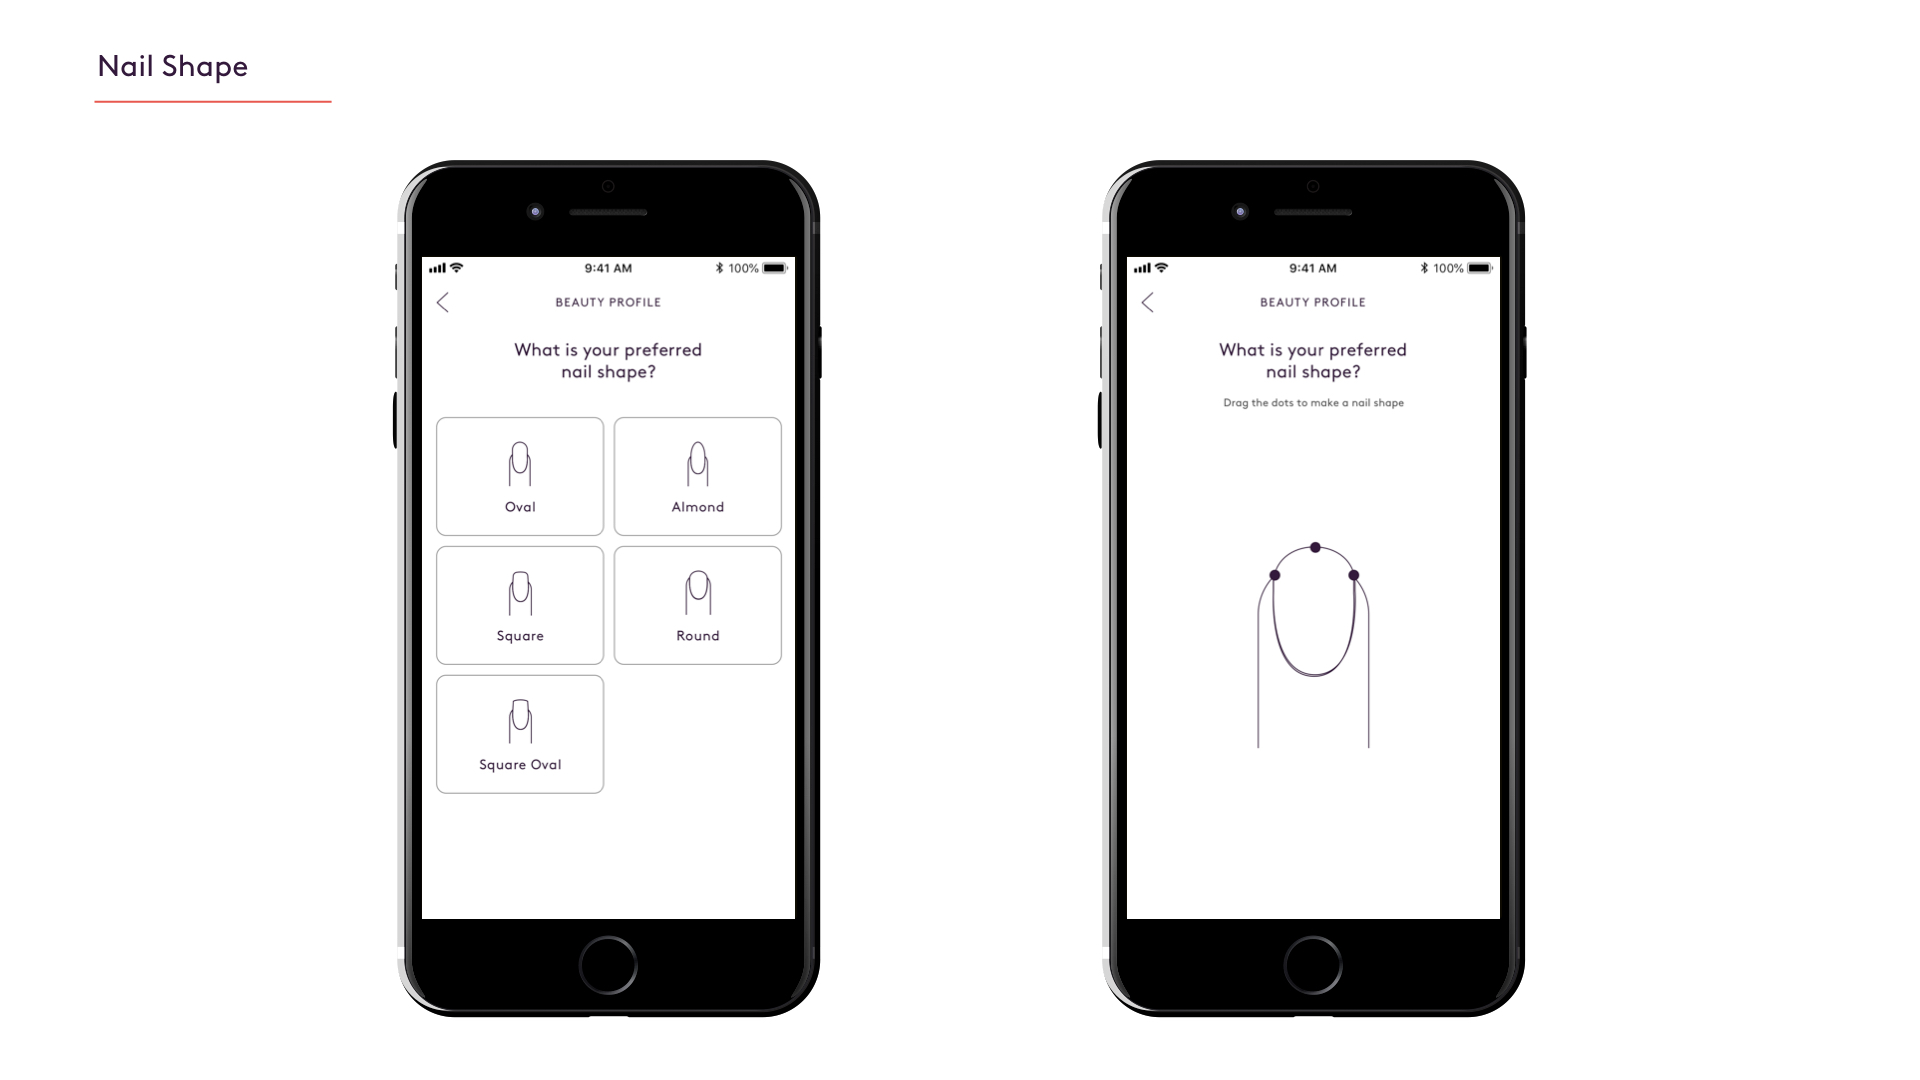 The first design is a simple multiple choice questions. The second design is an interactive experience where the user drags the pinpoints on the nail to create their nail shape.